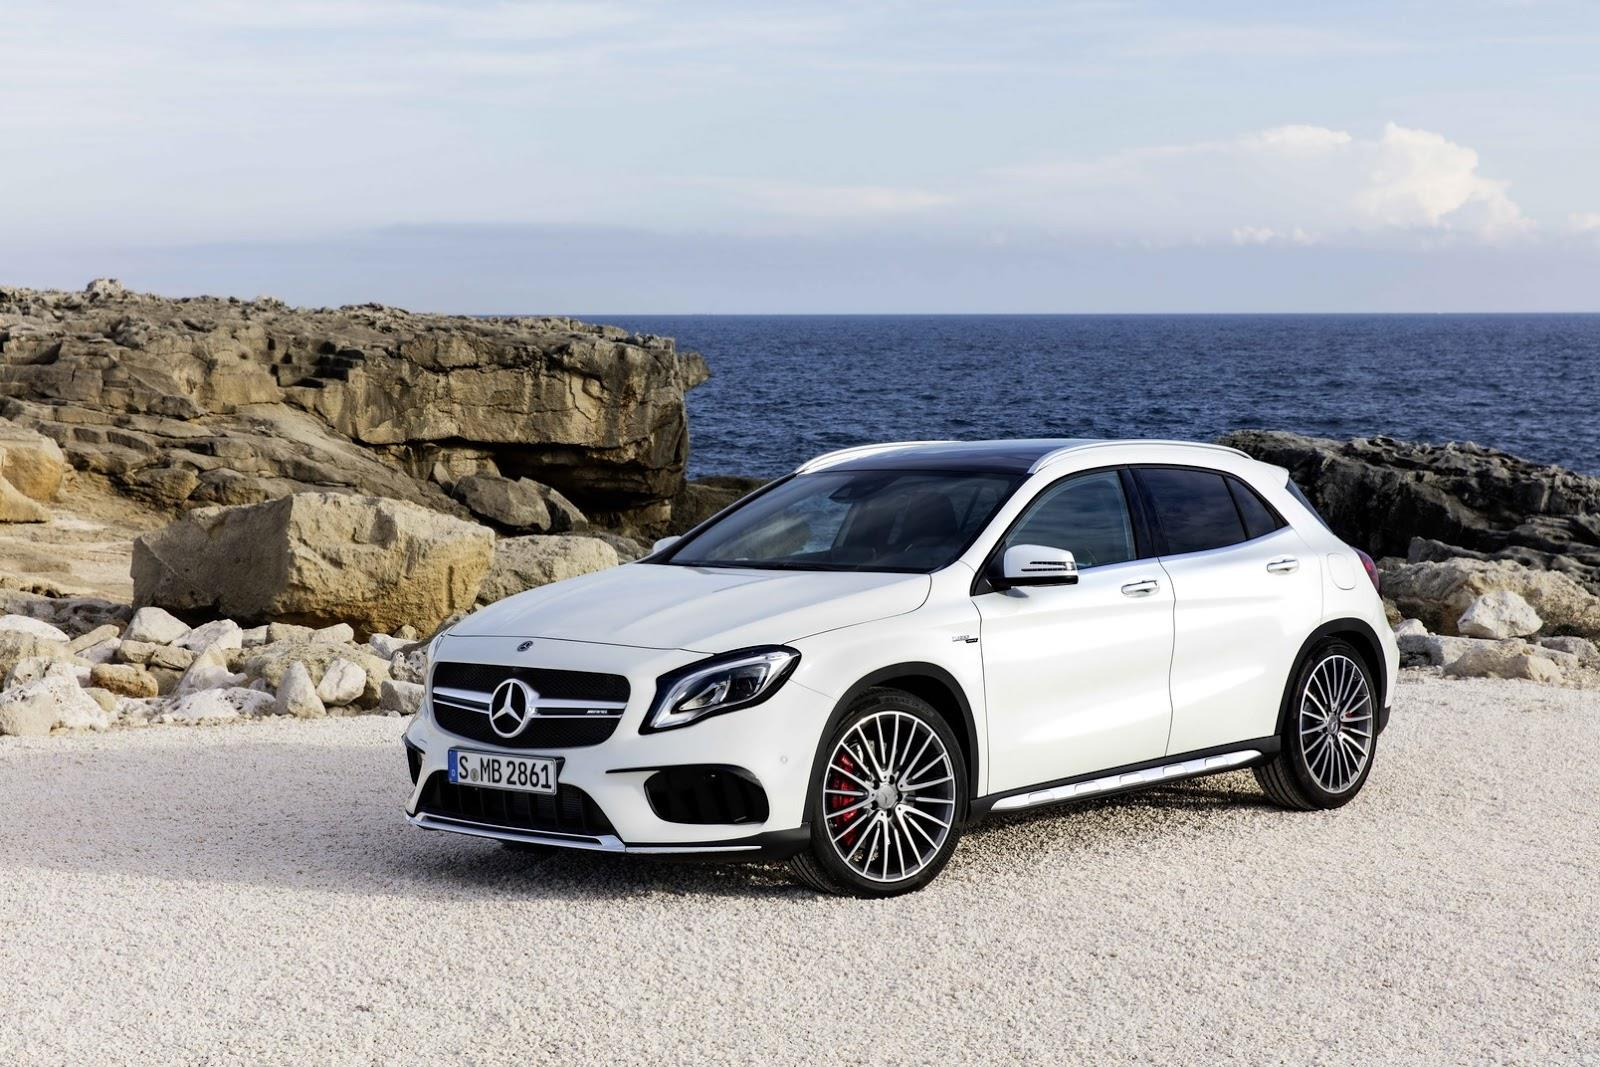 2017 Mercedes GLA facelift image gallery